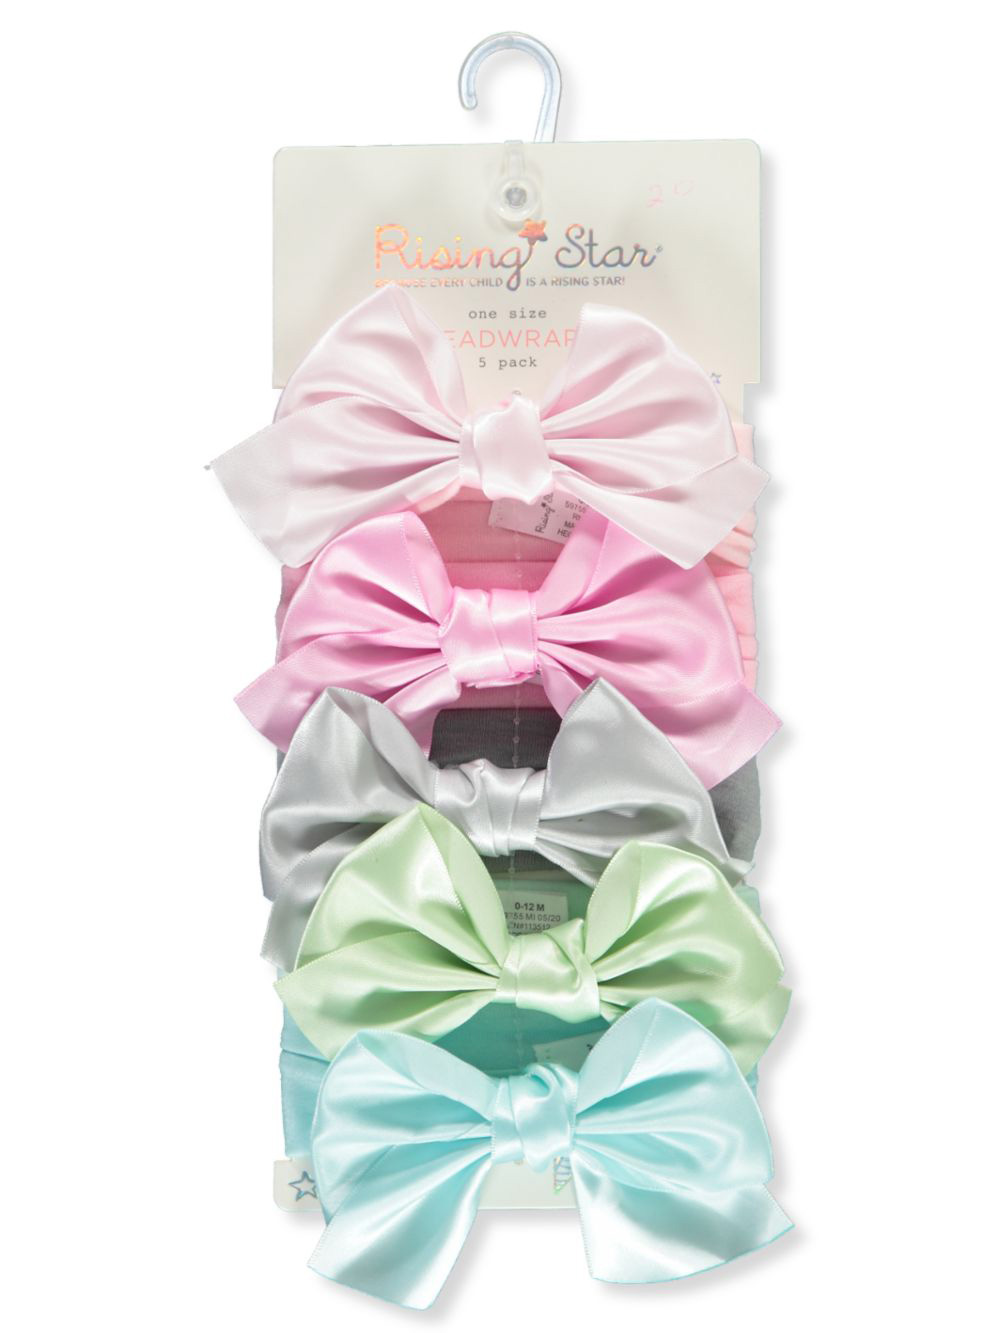 Rising Star Hair Accessories